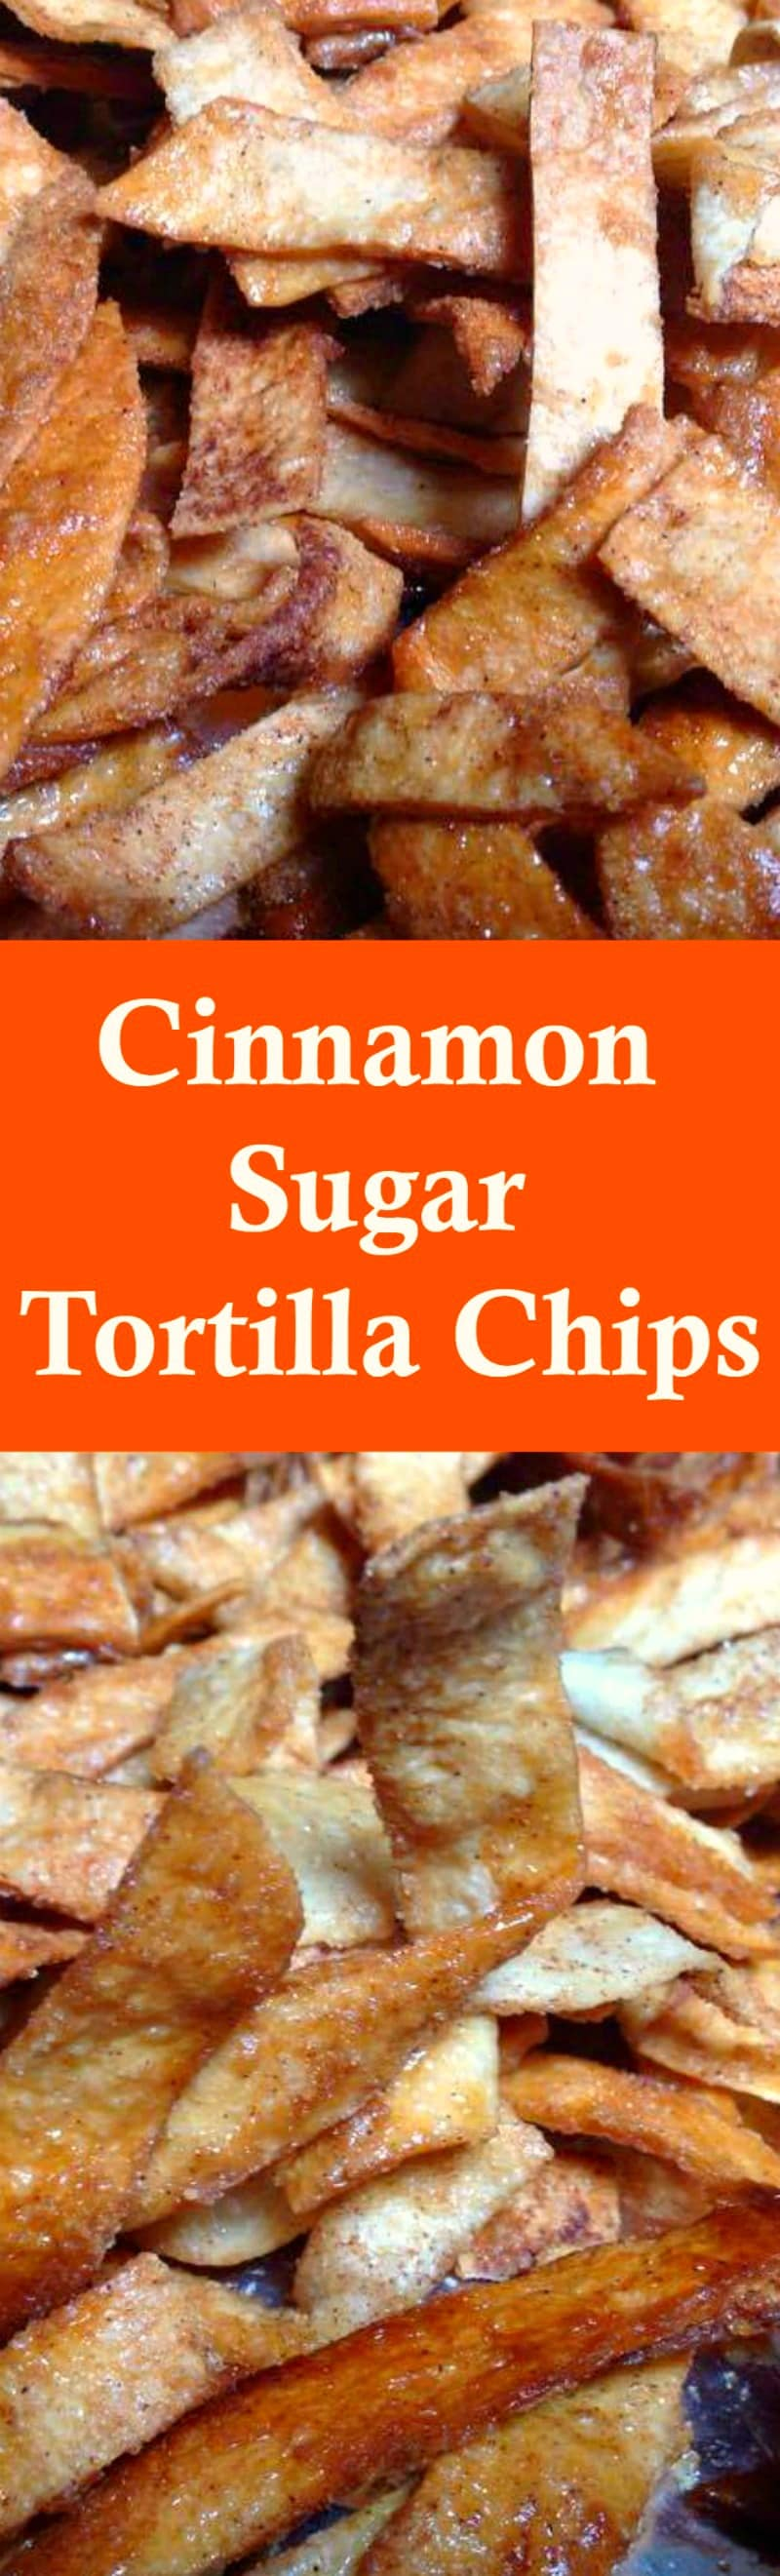 Cinnamon Sugar Tortilla Chips! These are a lovely sweet snack using very simple ingredients and incredibly easy to make. Perfect for parties and holidays. | Lovefoodies.com